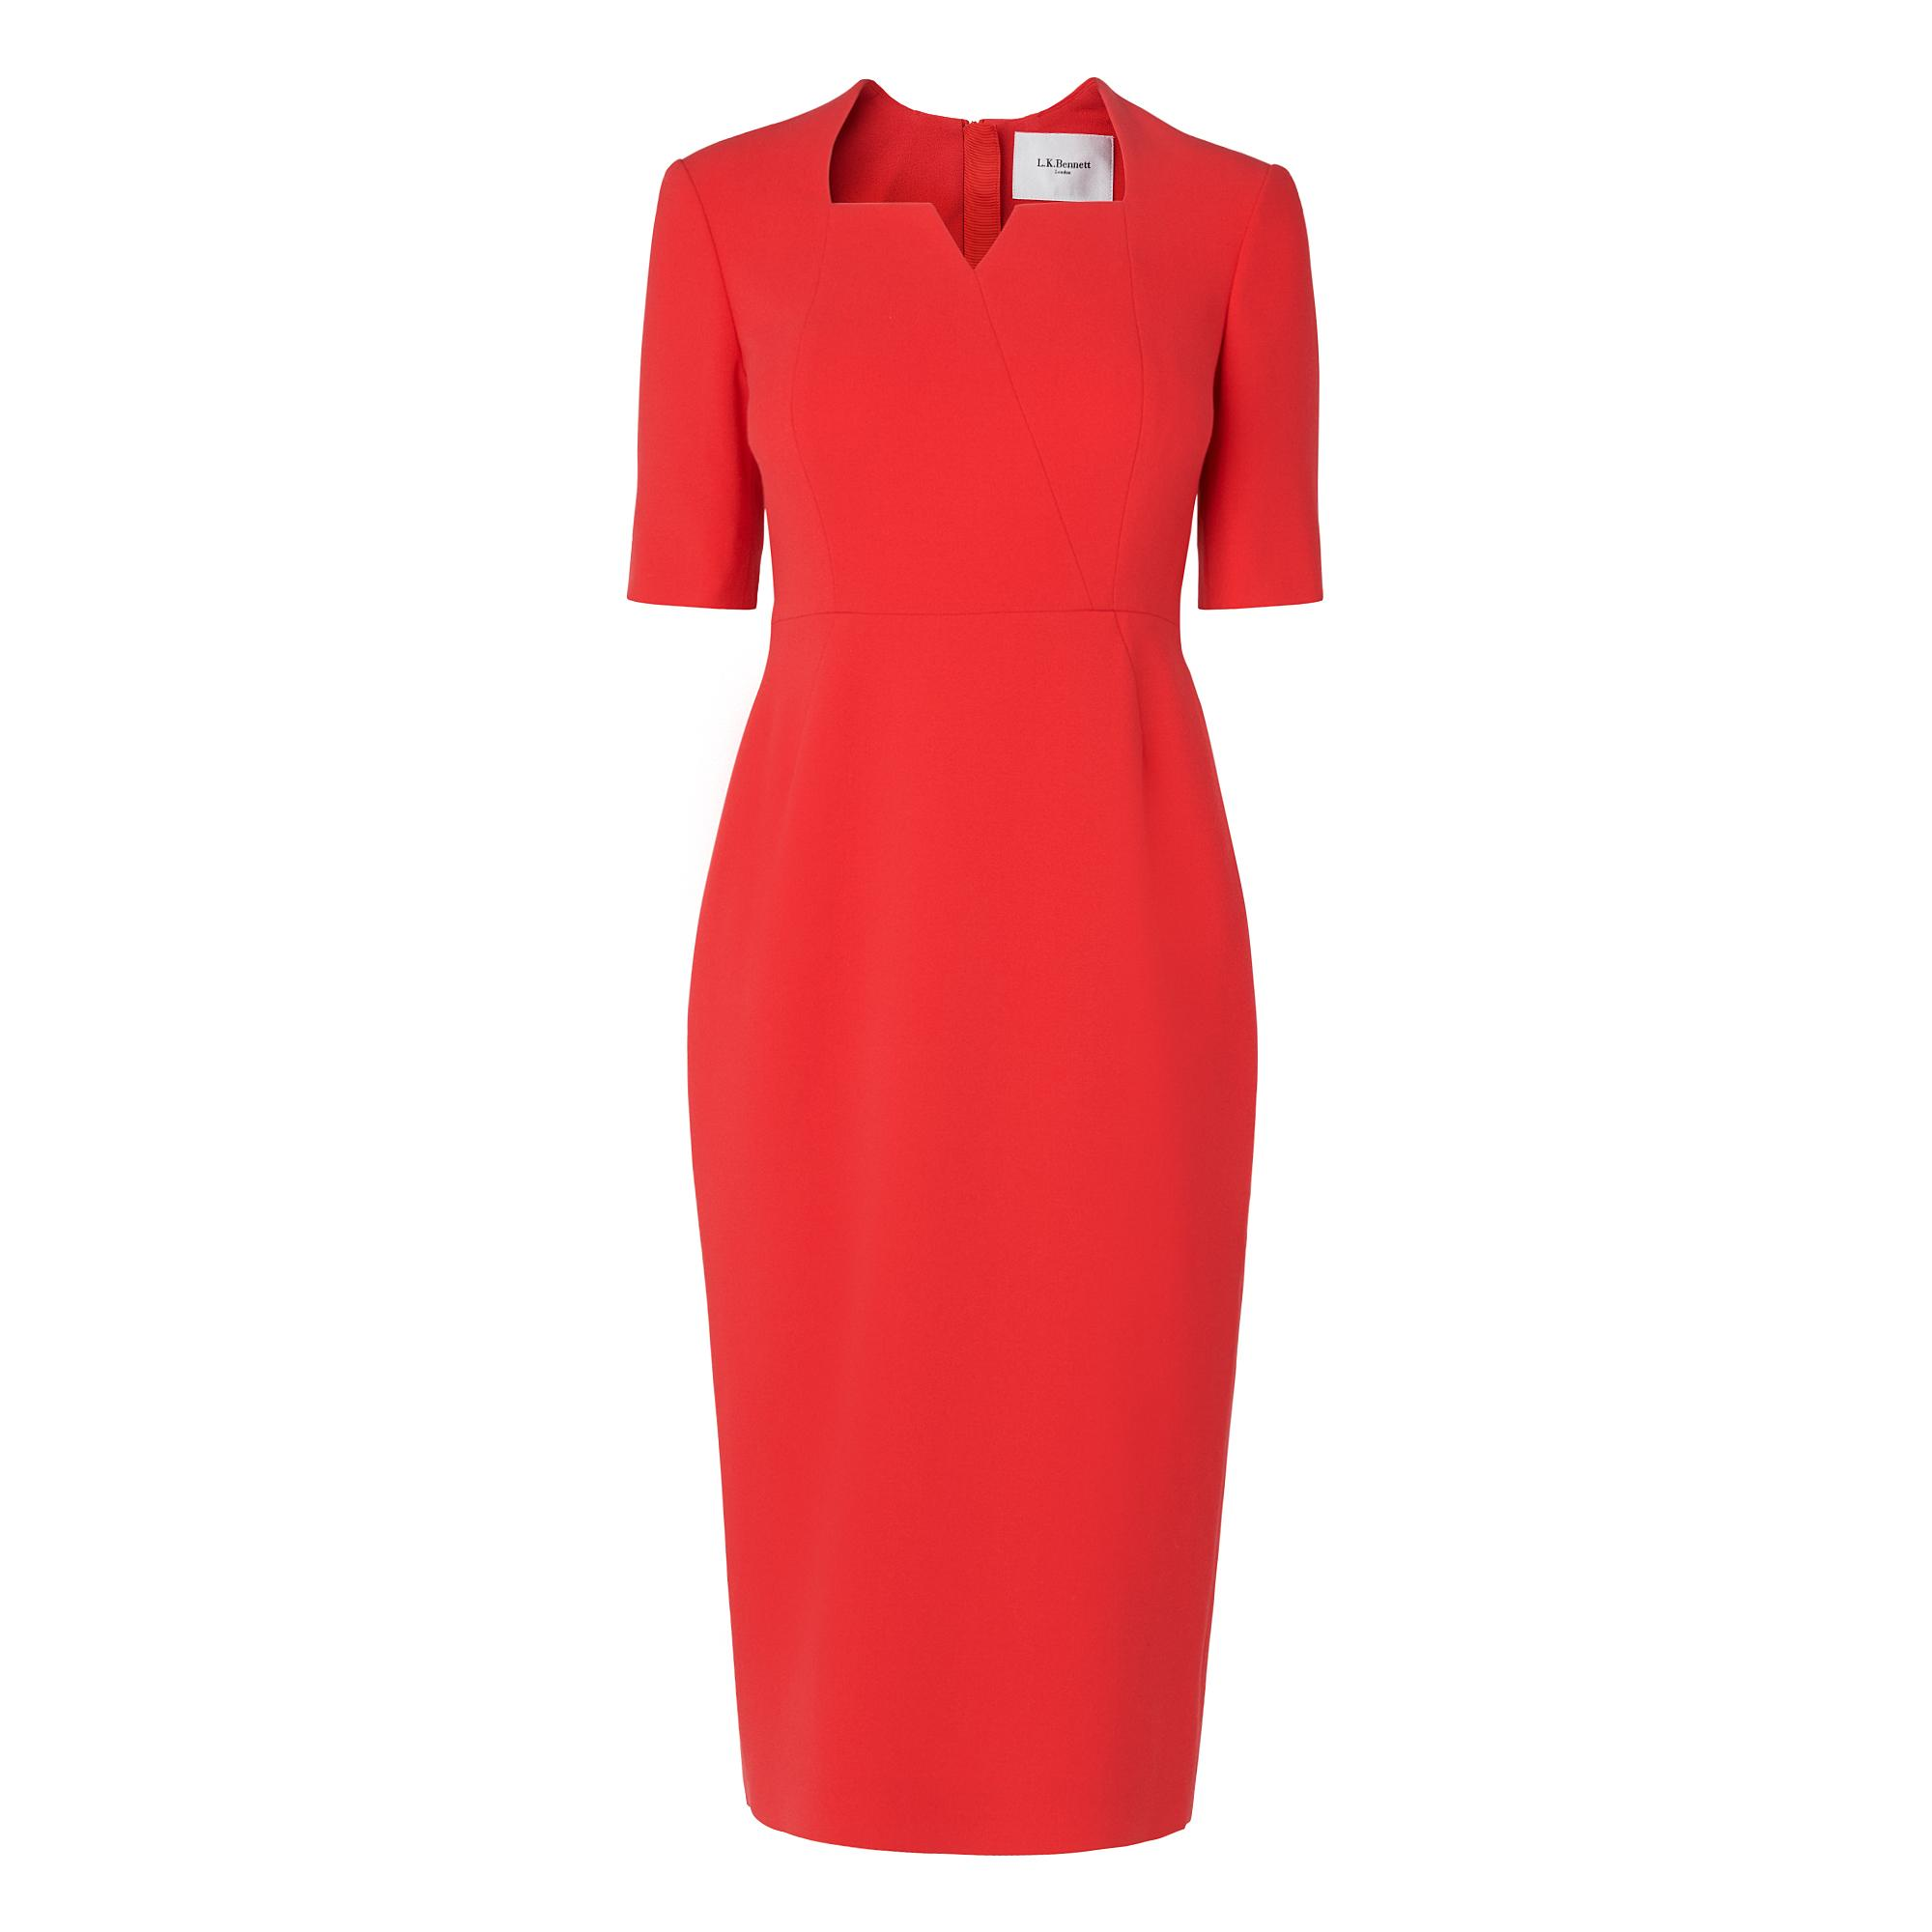 L.K.Bennett Sam Tailored Dress